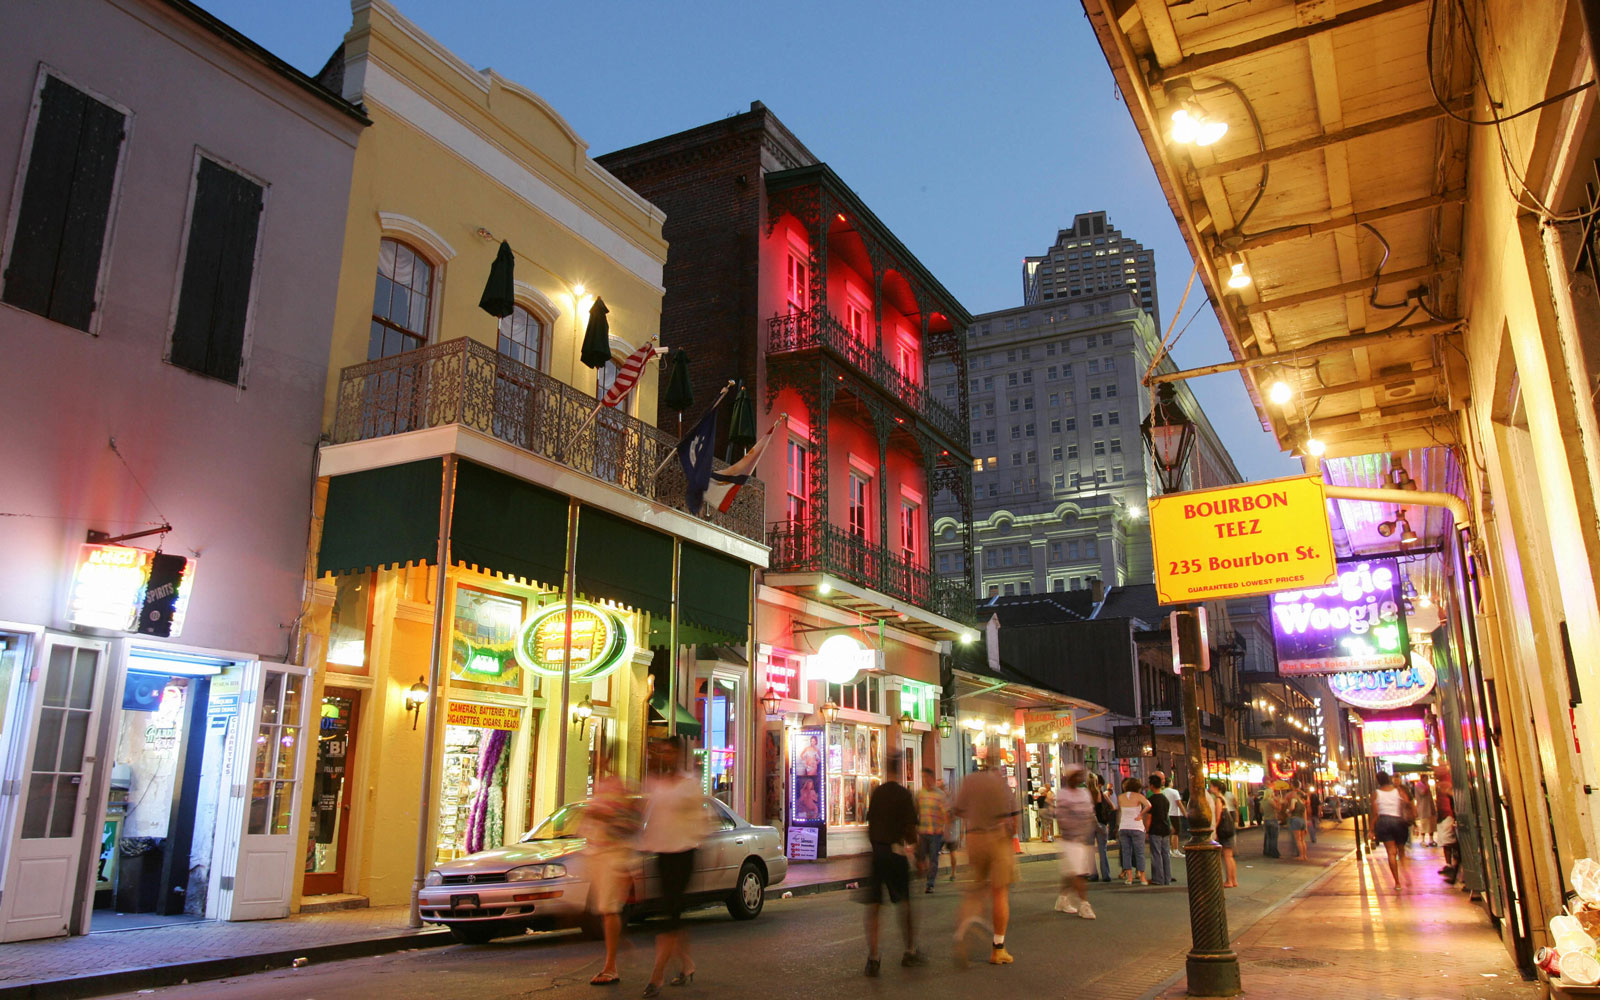 Virgin Hotels Plans New Hotel in New Orleans